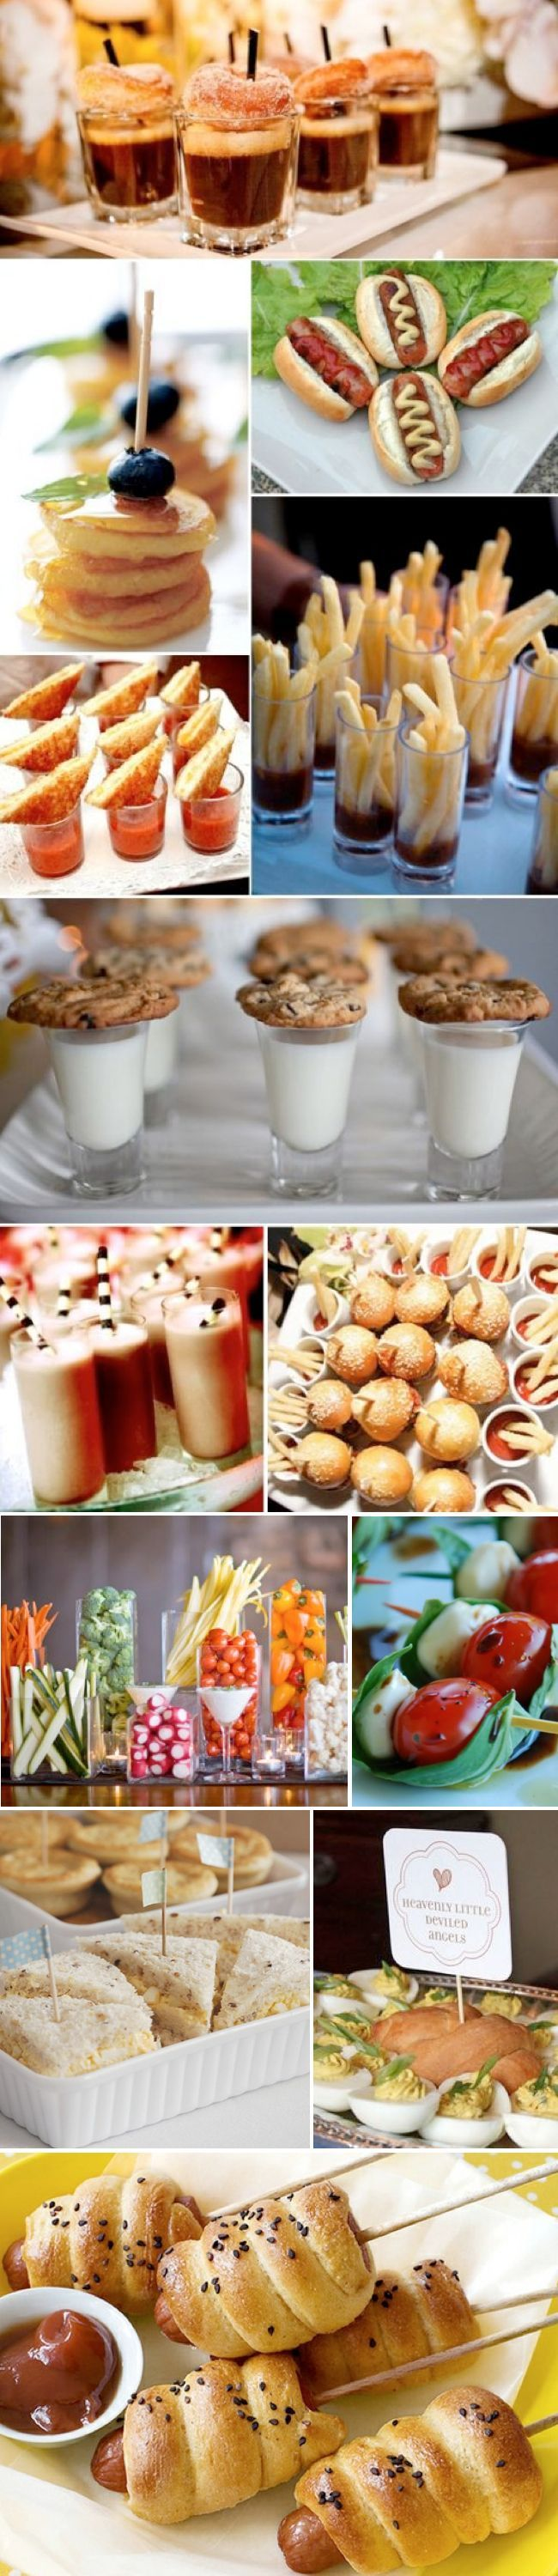 Wedding Buffet Menu Ideas for a Casual Wedding